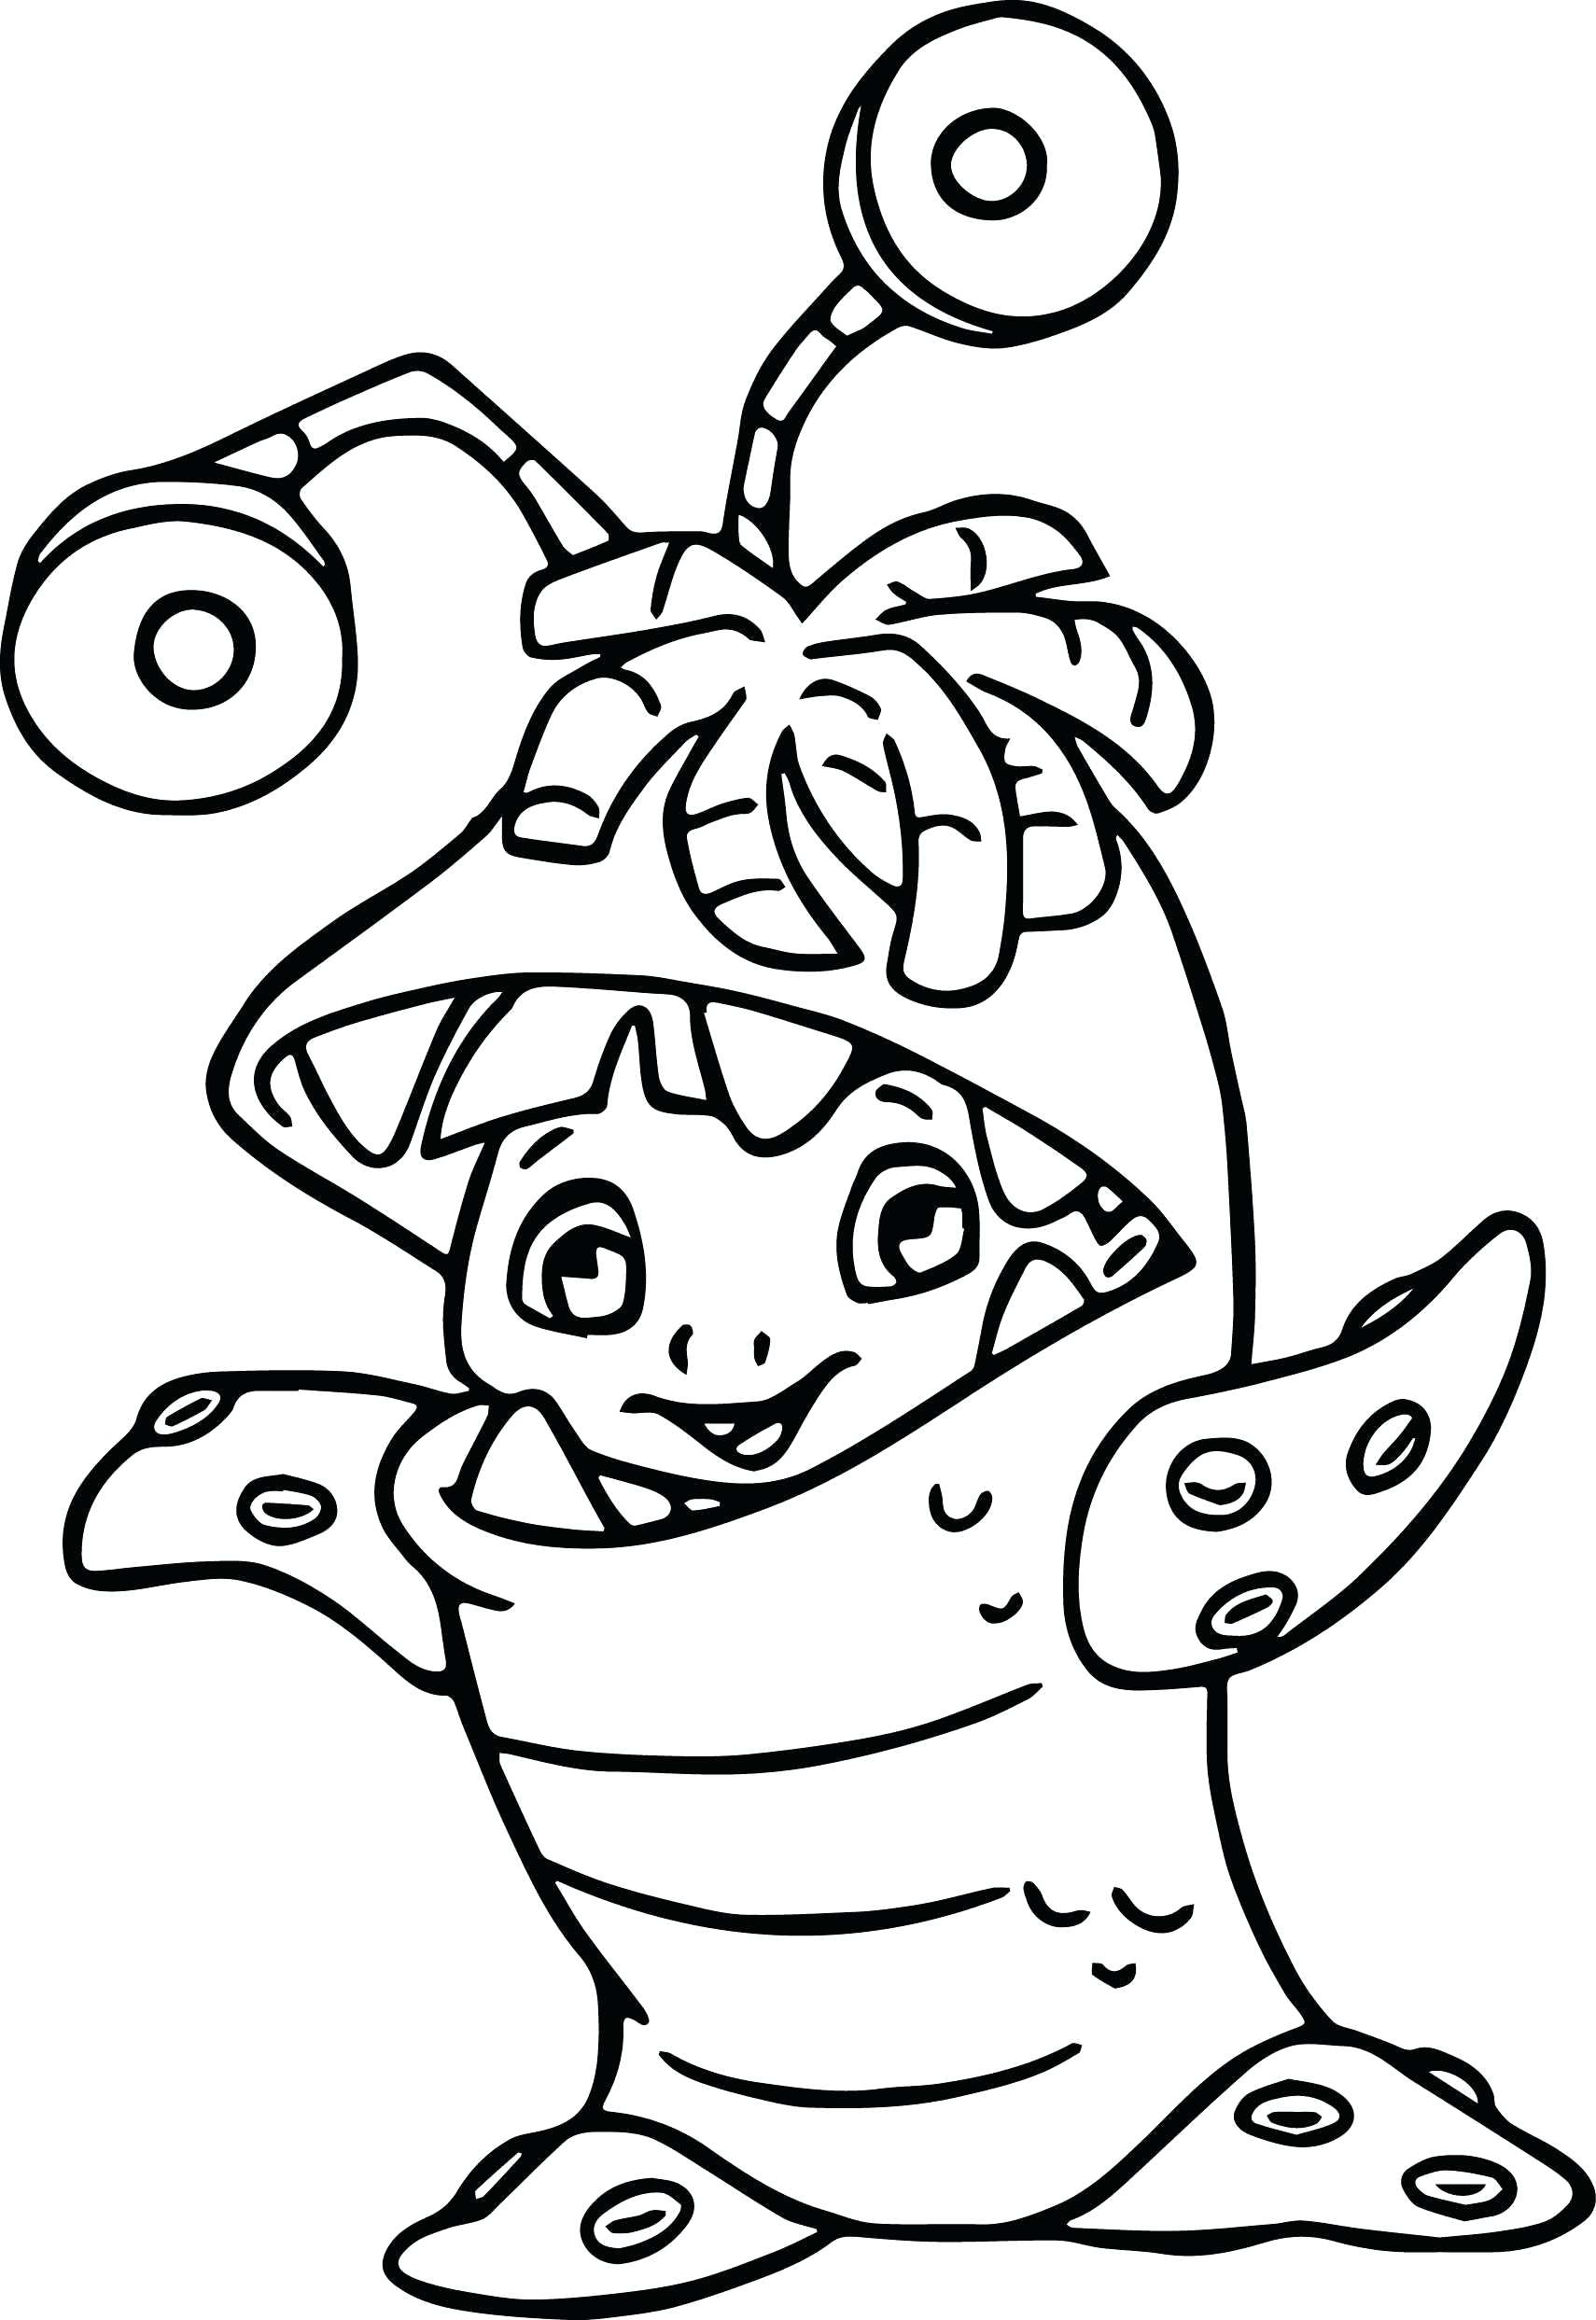 1710x2486 Coloring Interesting Stuffed Animal Coloring Pages. Stuffed